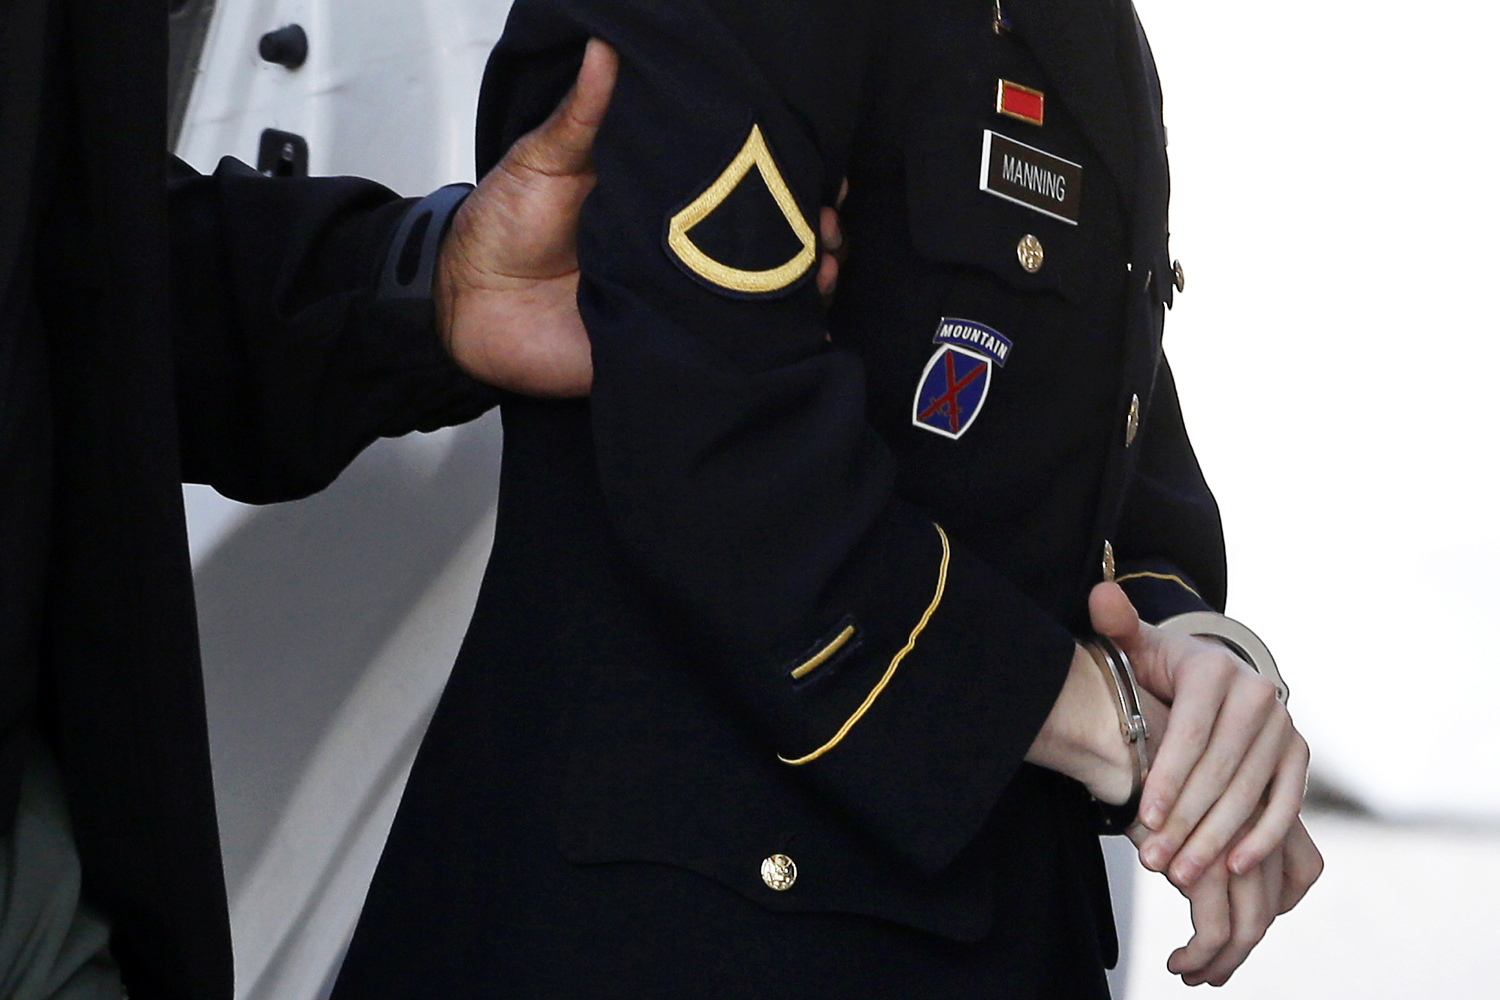 Aug. 20, 2013. Army Pfc. Bradley Manning is escorted into a courthouse in Fort Meade, Md., before a hearing in his court martial.